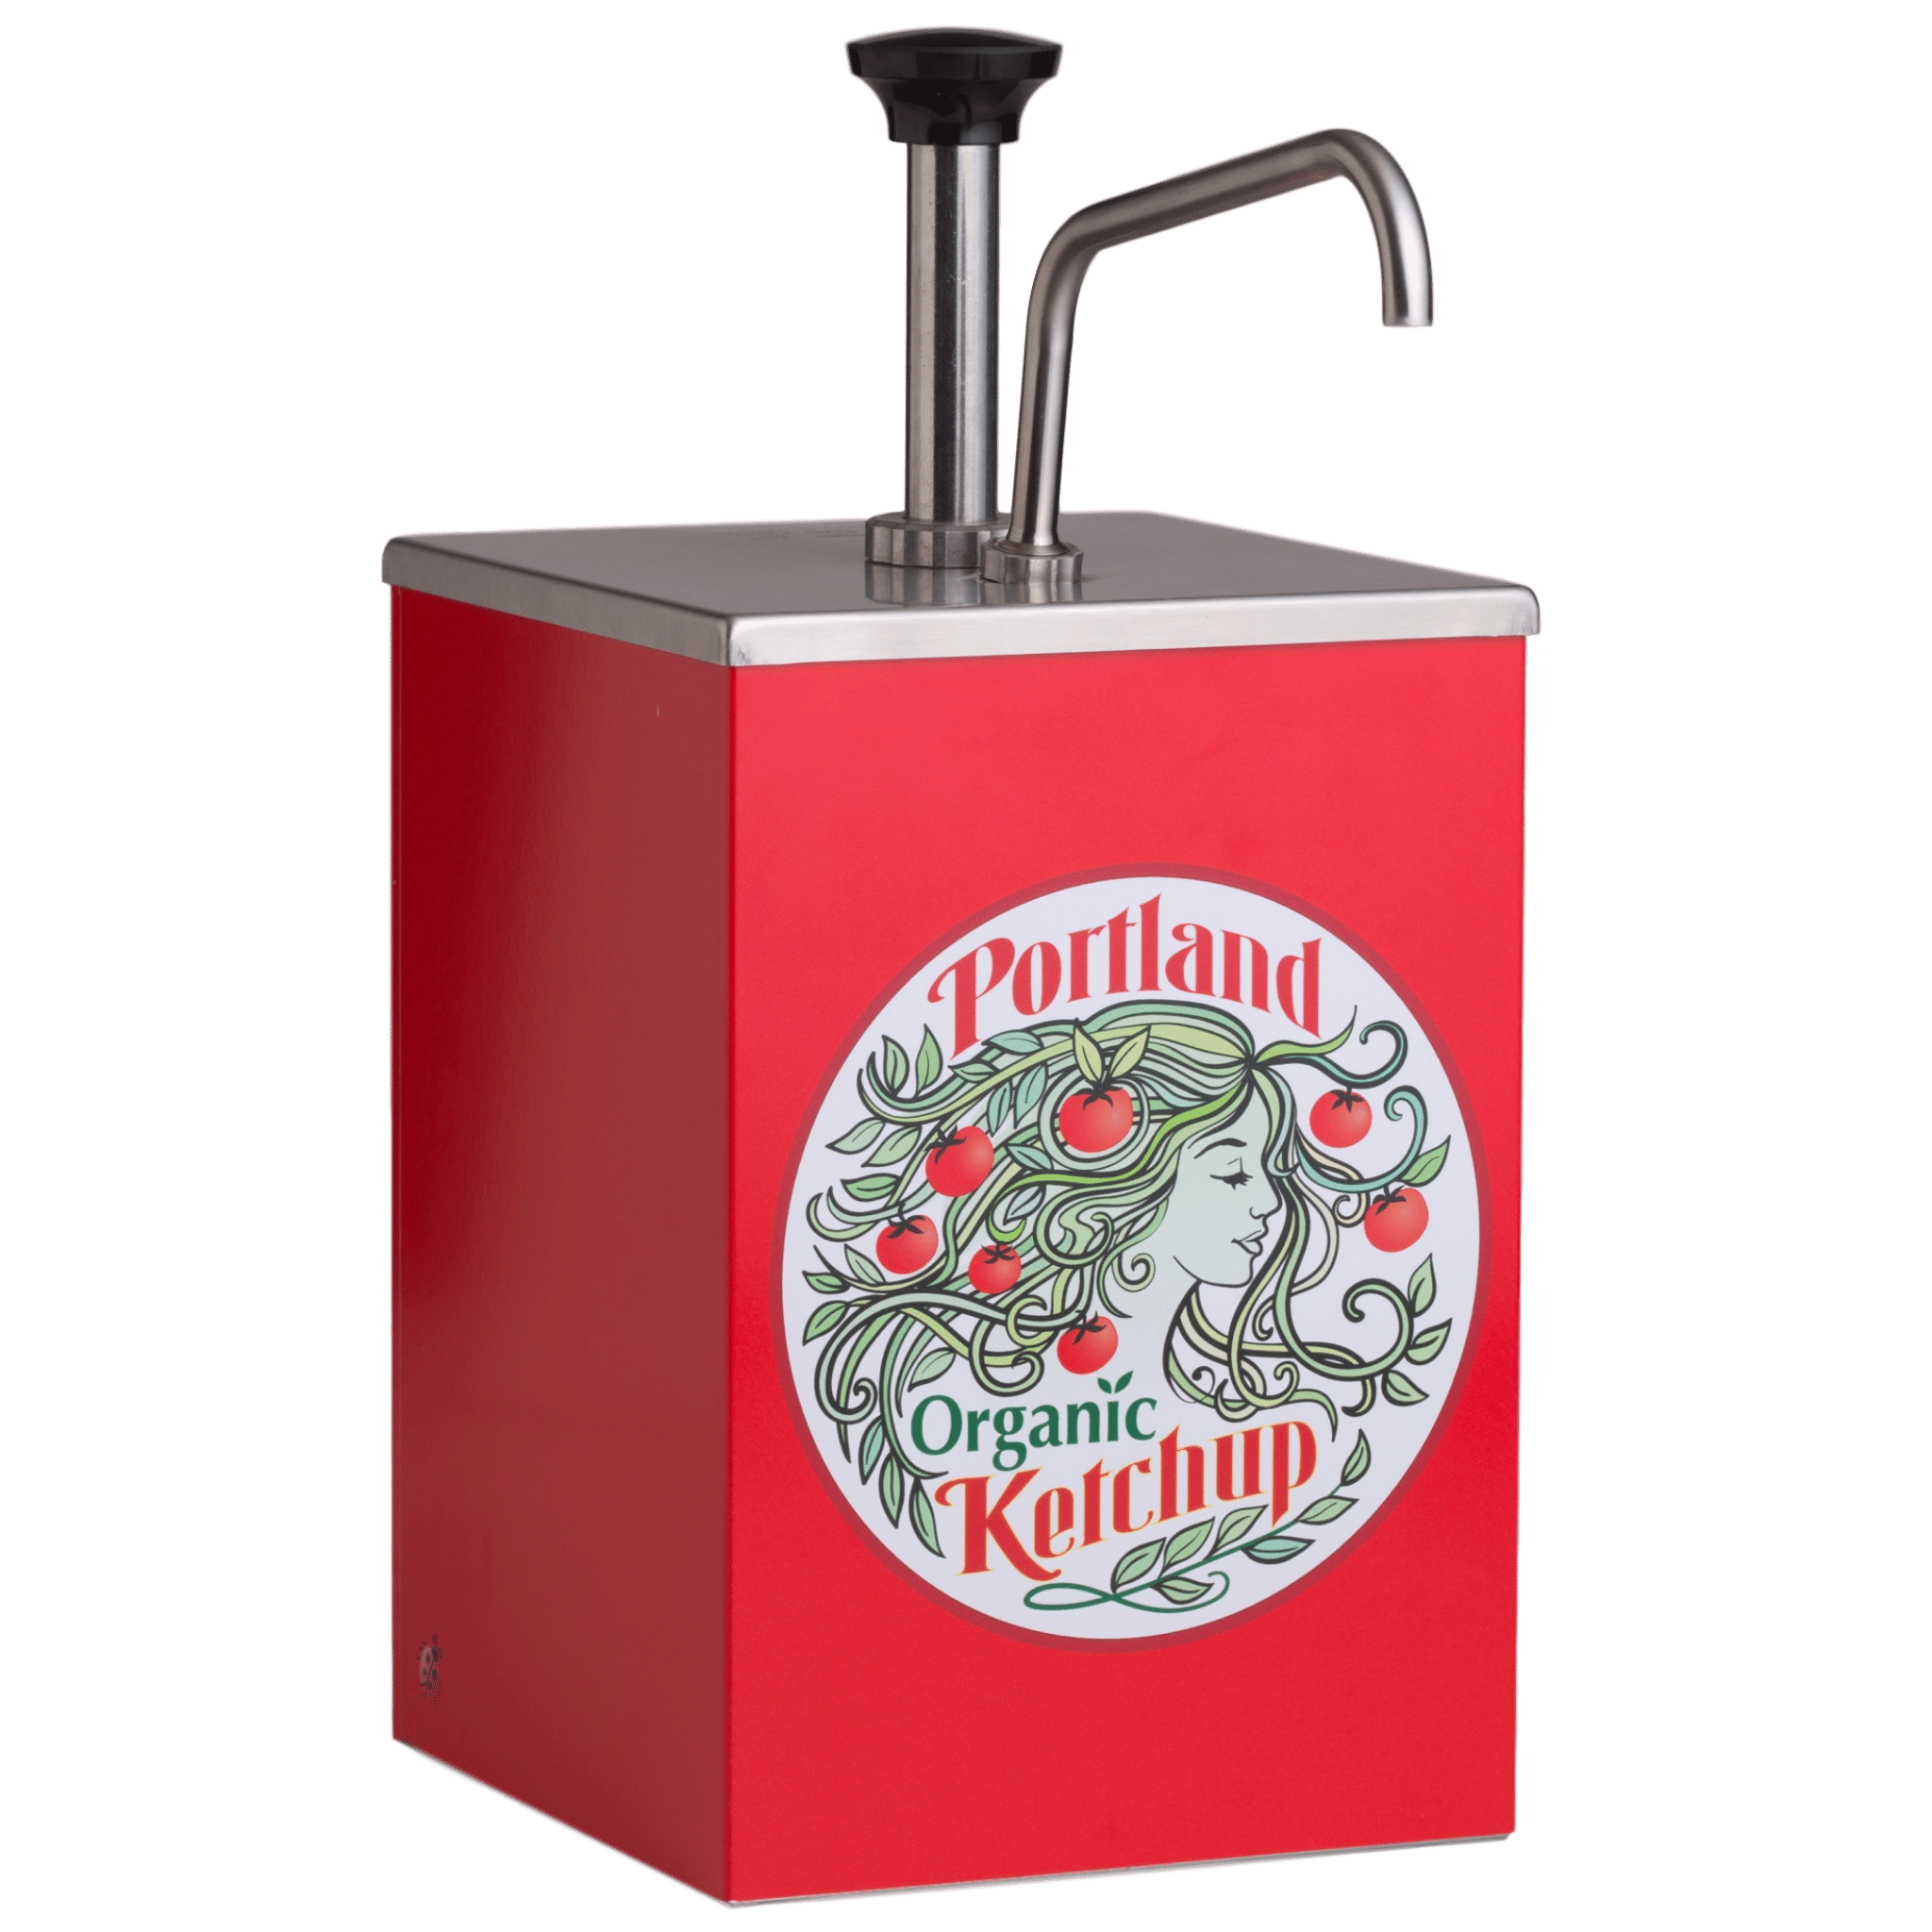 Portland Organic Ketchup Stainless Steel Pump 1 gallon dispenser with Portland Organic Ketchup Label on the front, restaurant supply, non GMO, Dairy Free, Gluten Free, condiments